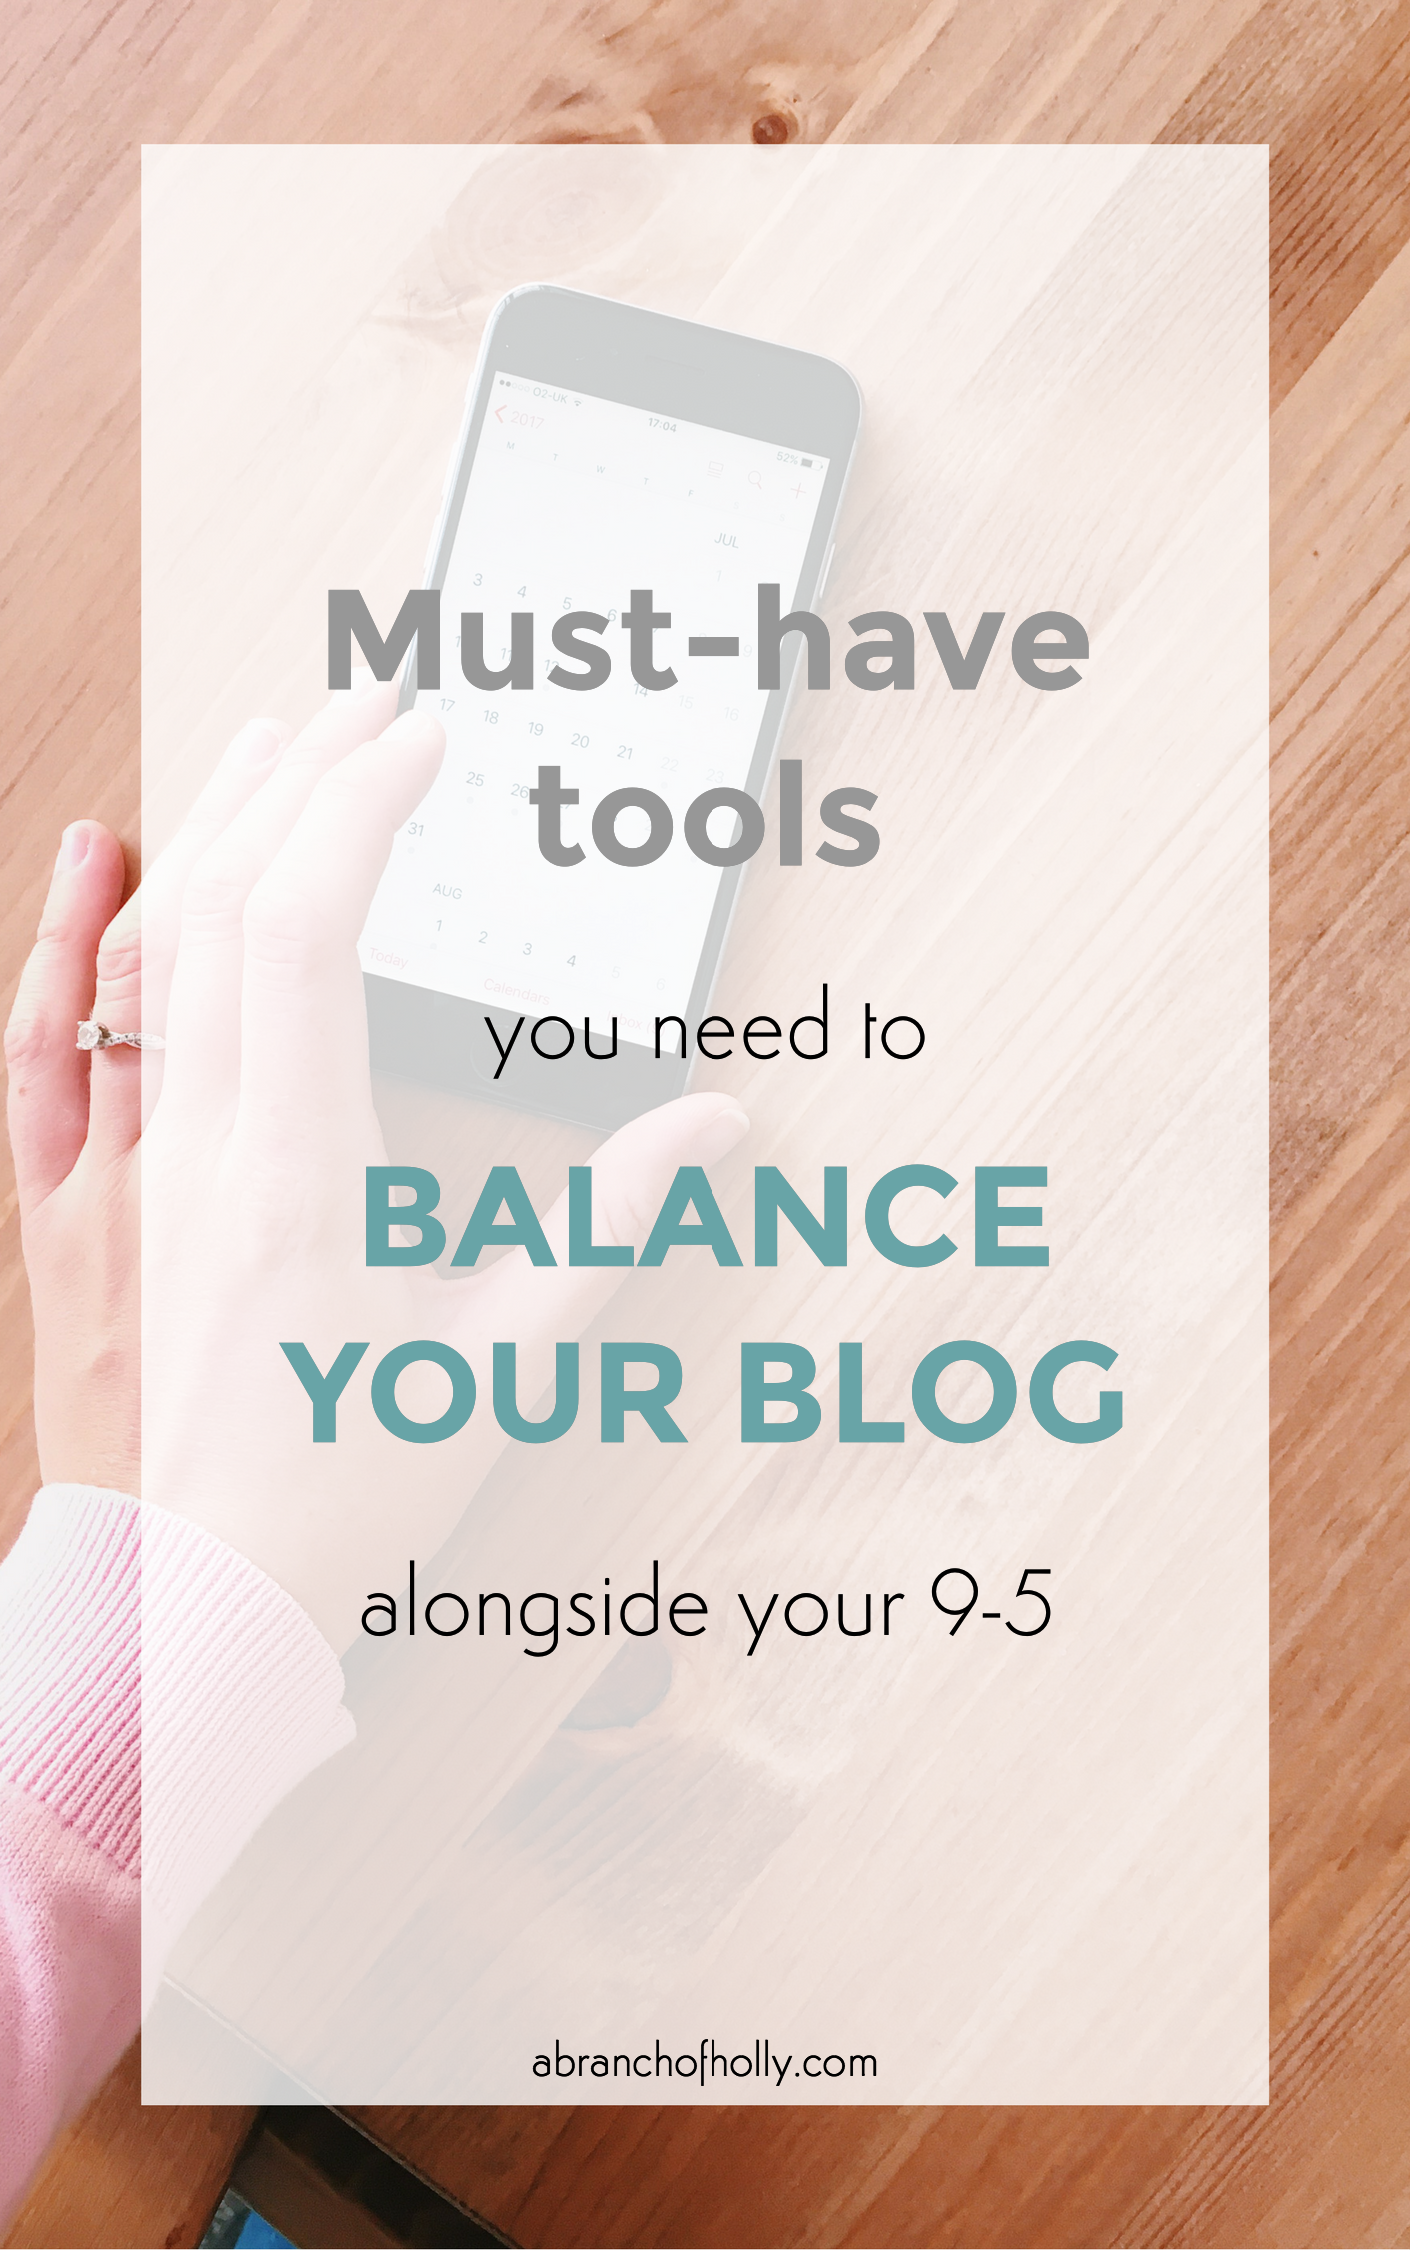 tools to balance blog alongside 9-5